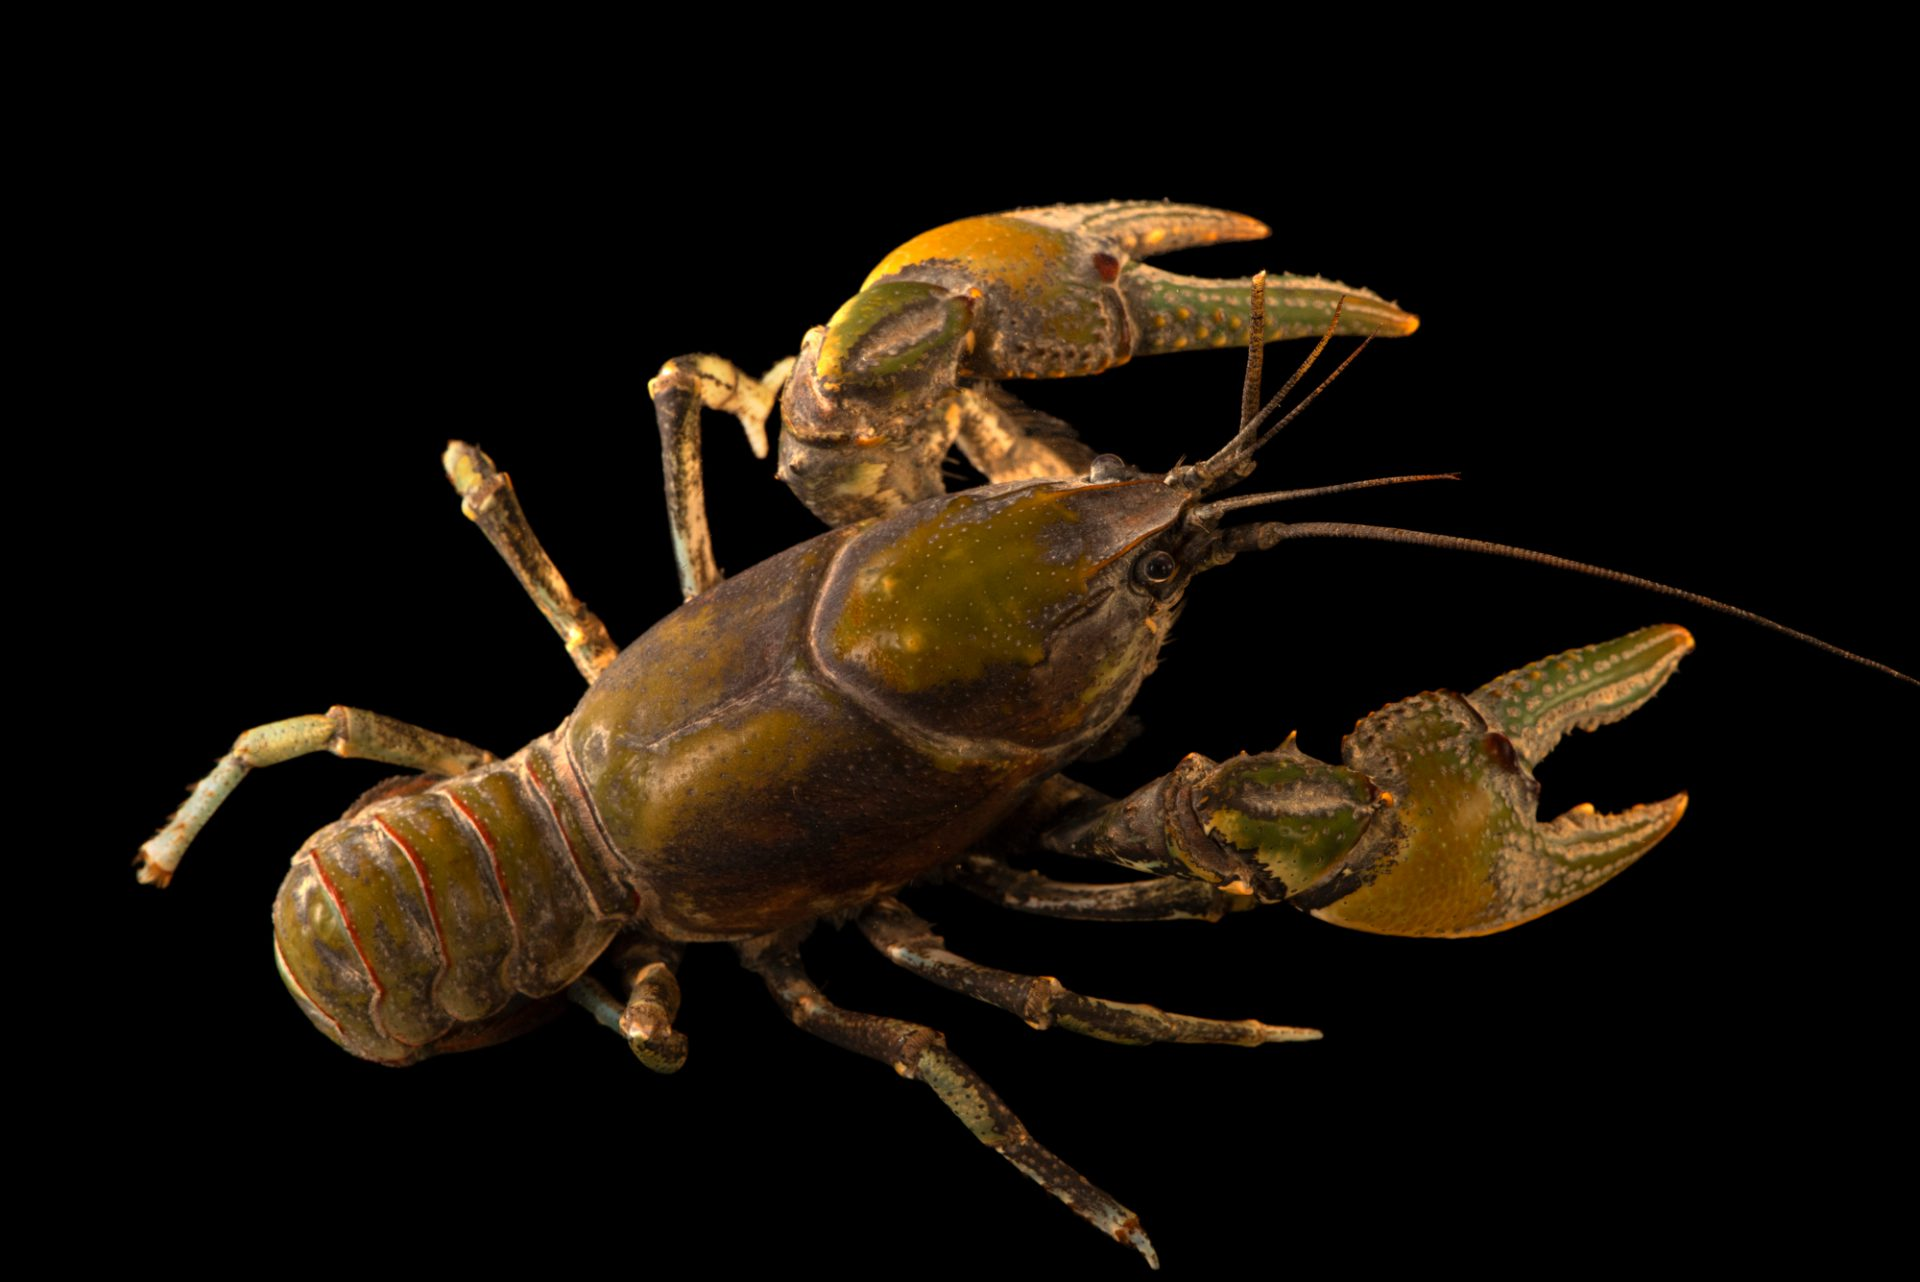 Photo: Devil crayfish (Cambarus diogenes) from the wild.